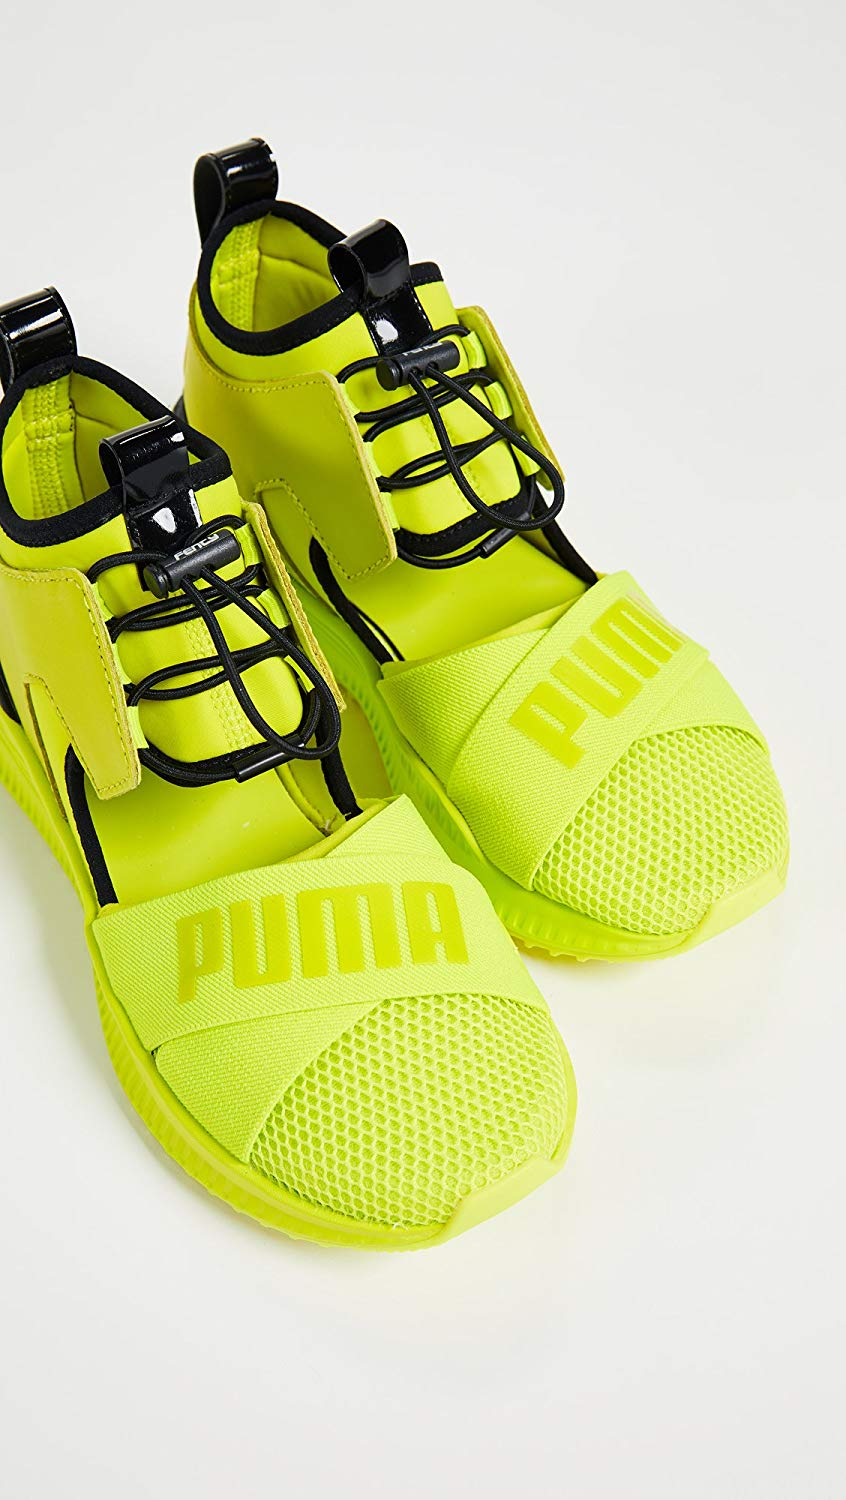 online store 60881 13980 PUMA Women's x Fenty Avid Sneakers – Please Your Feet